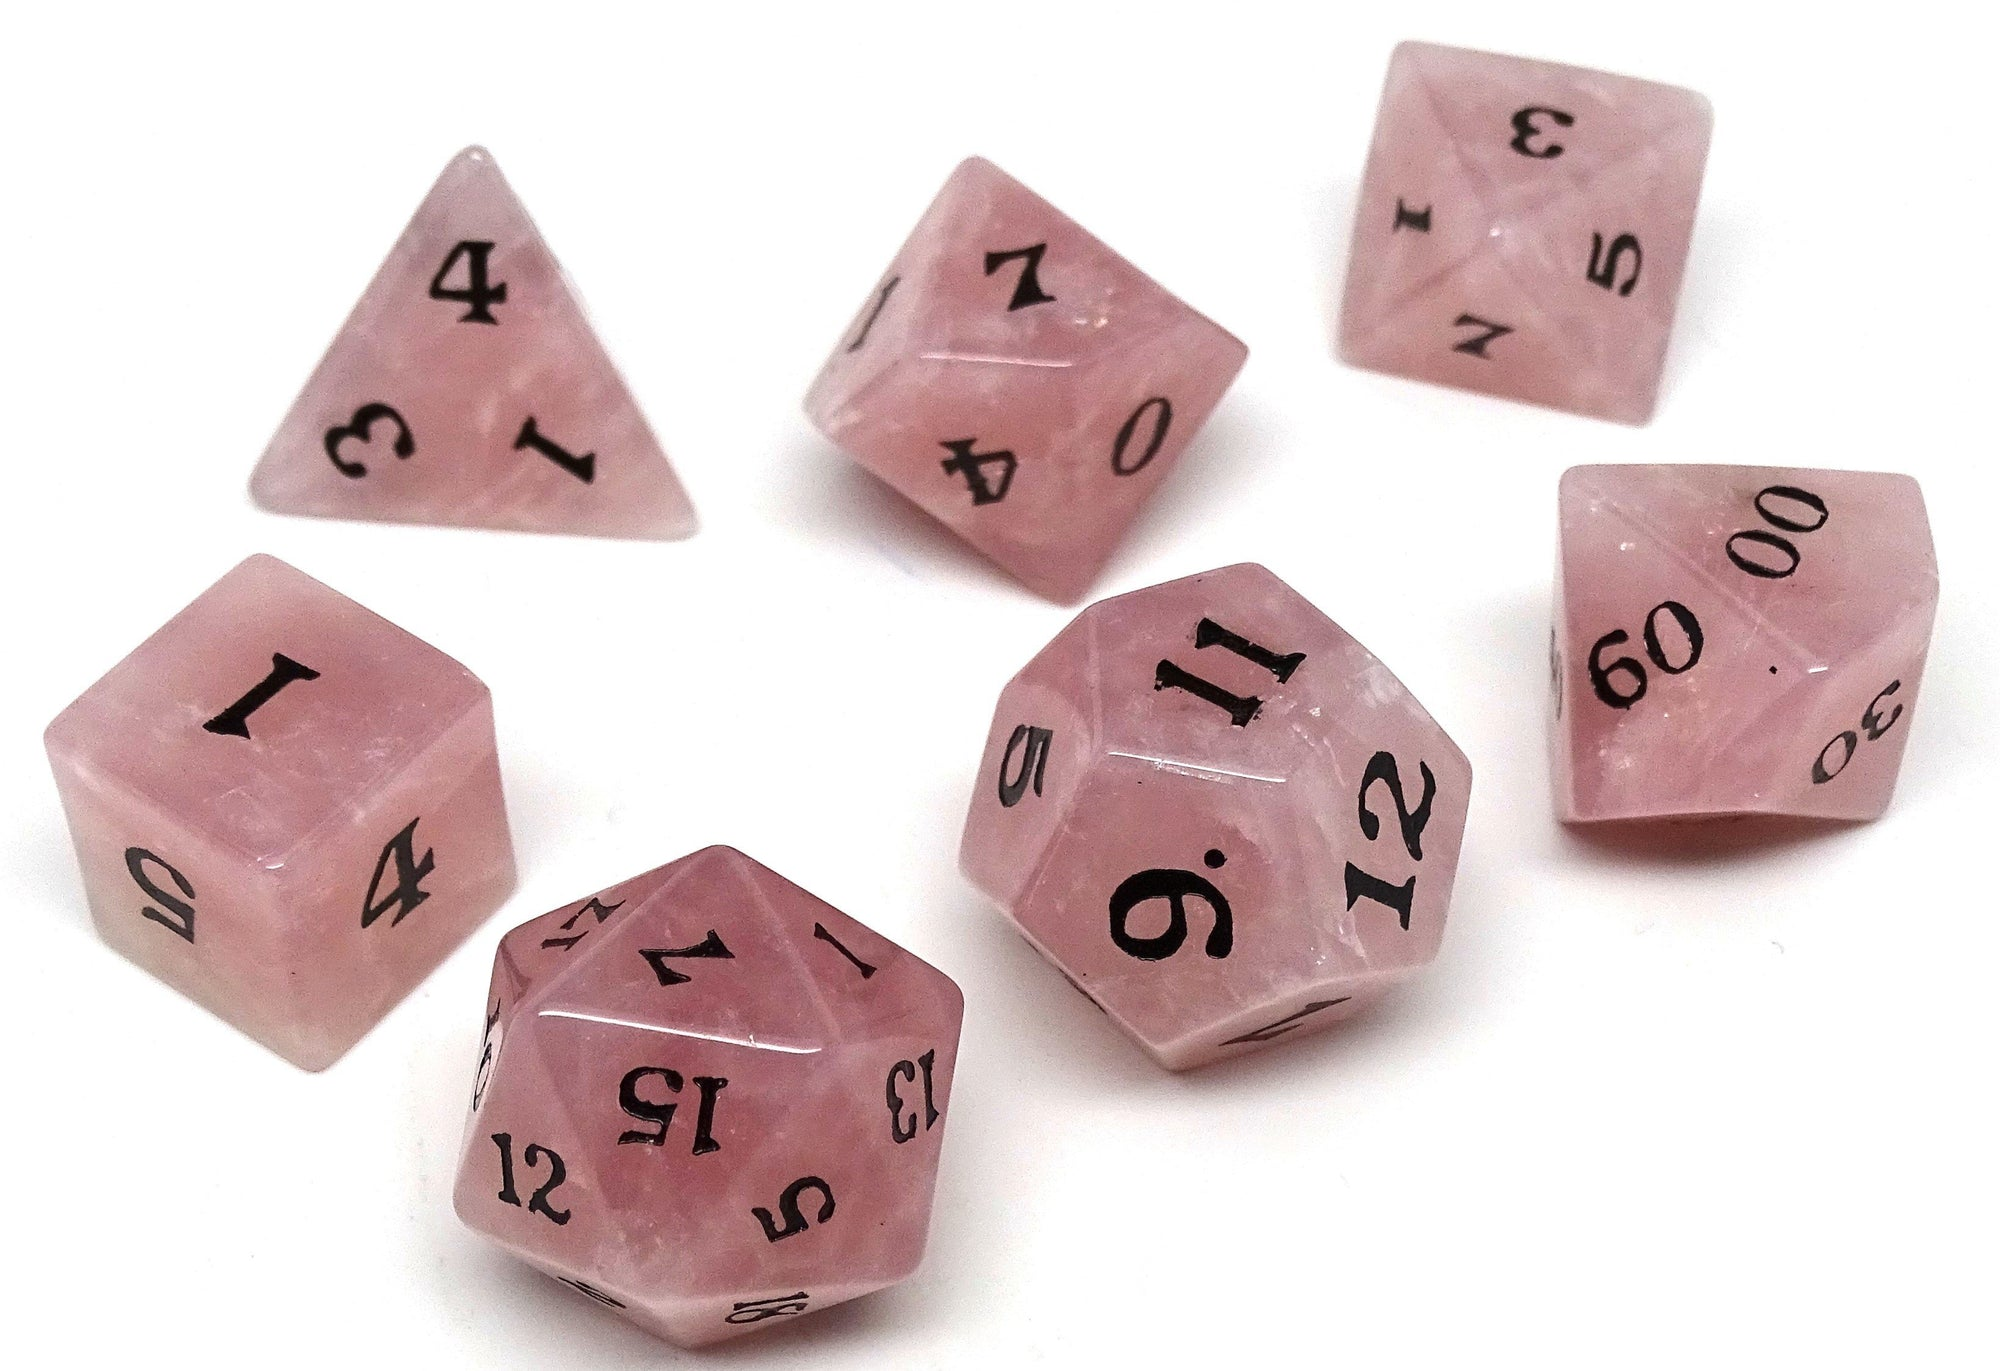 Stone Dice Collection - Rose Quartz - Signature Font